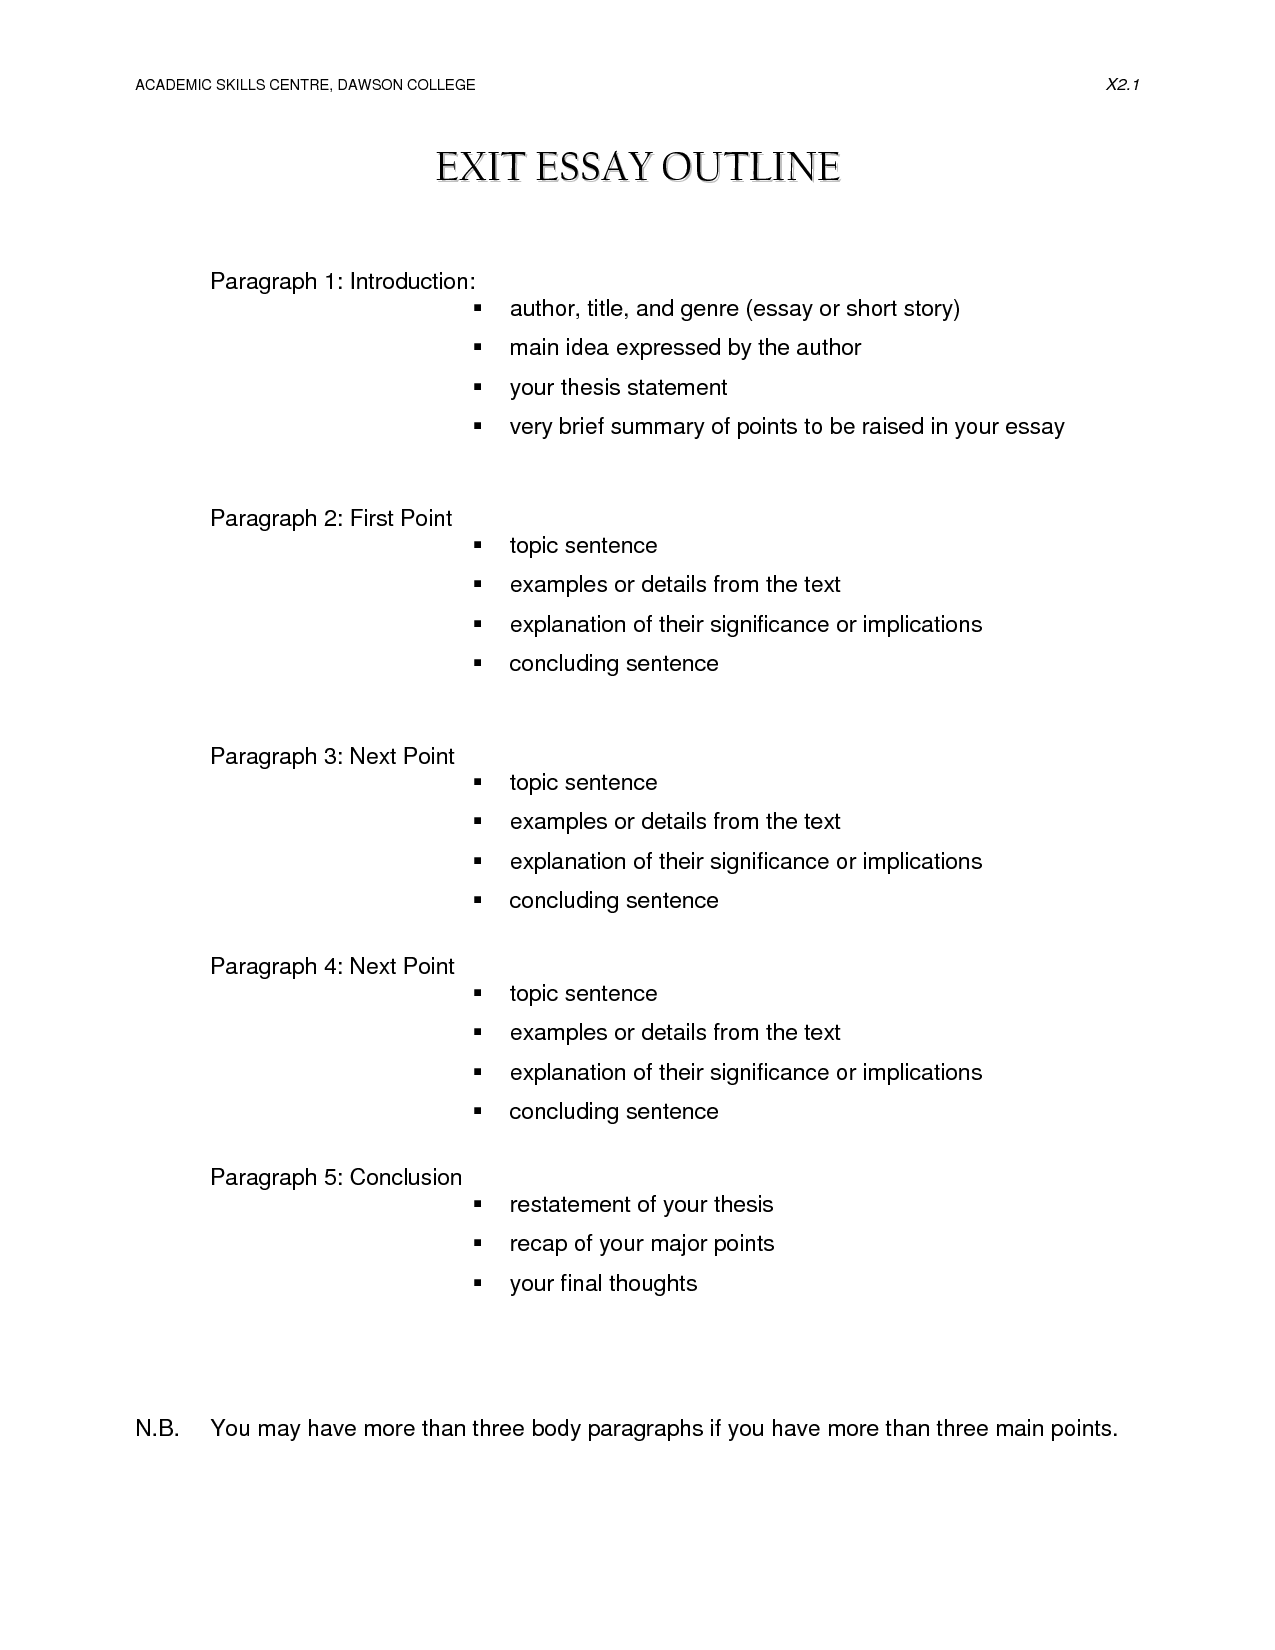 Research Paper Format Outline